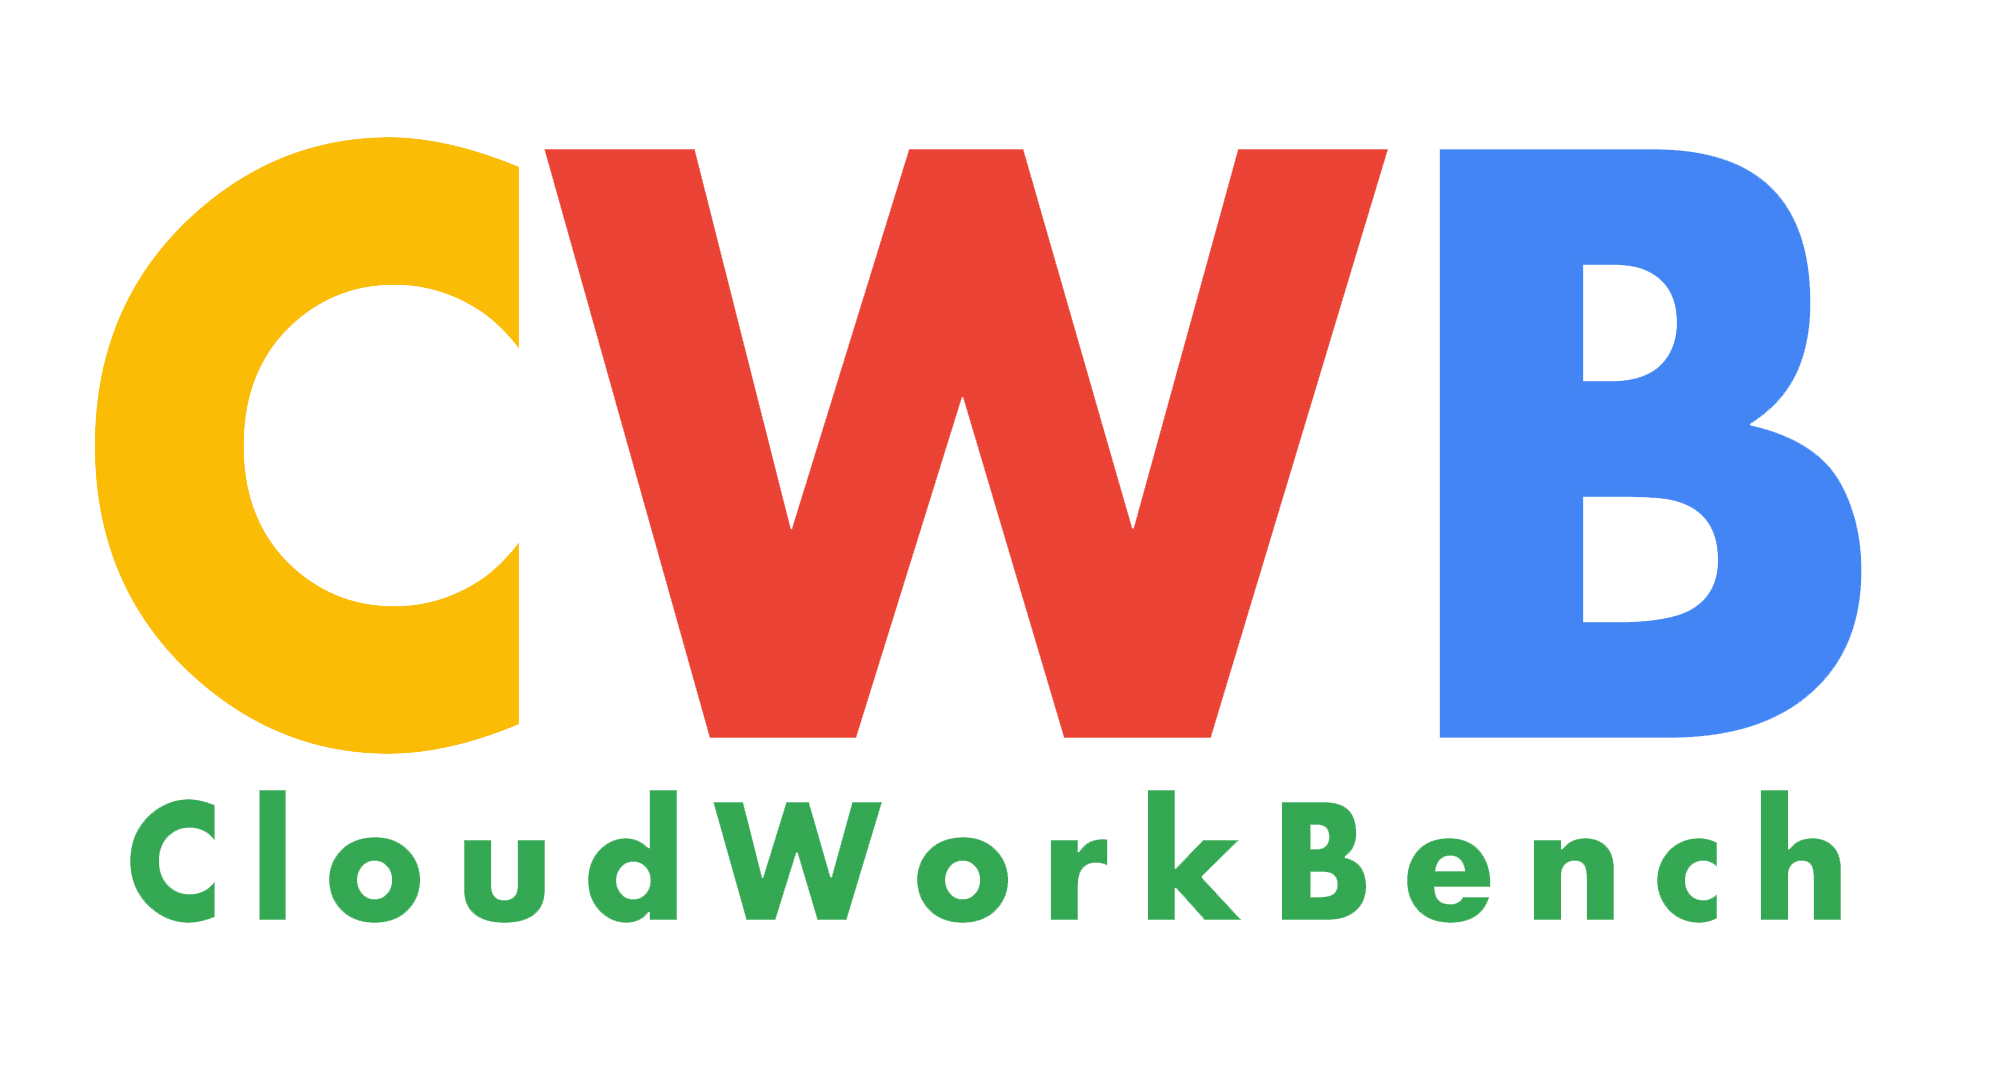 CWB Software Marketplace